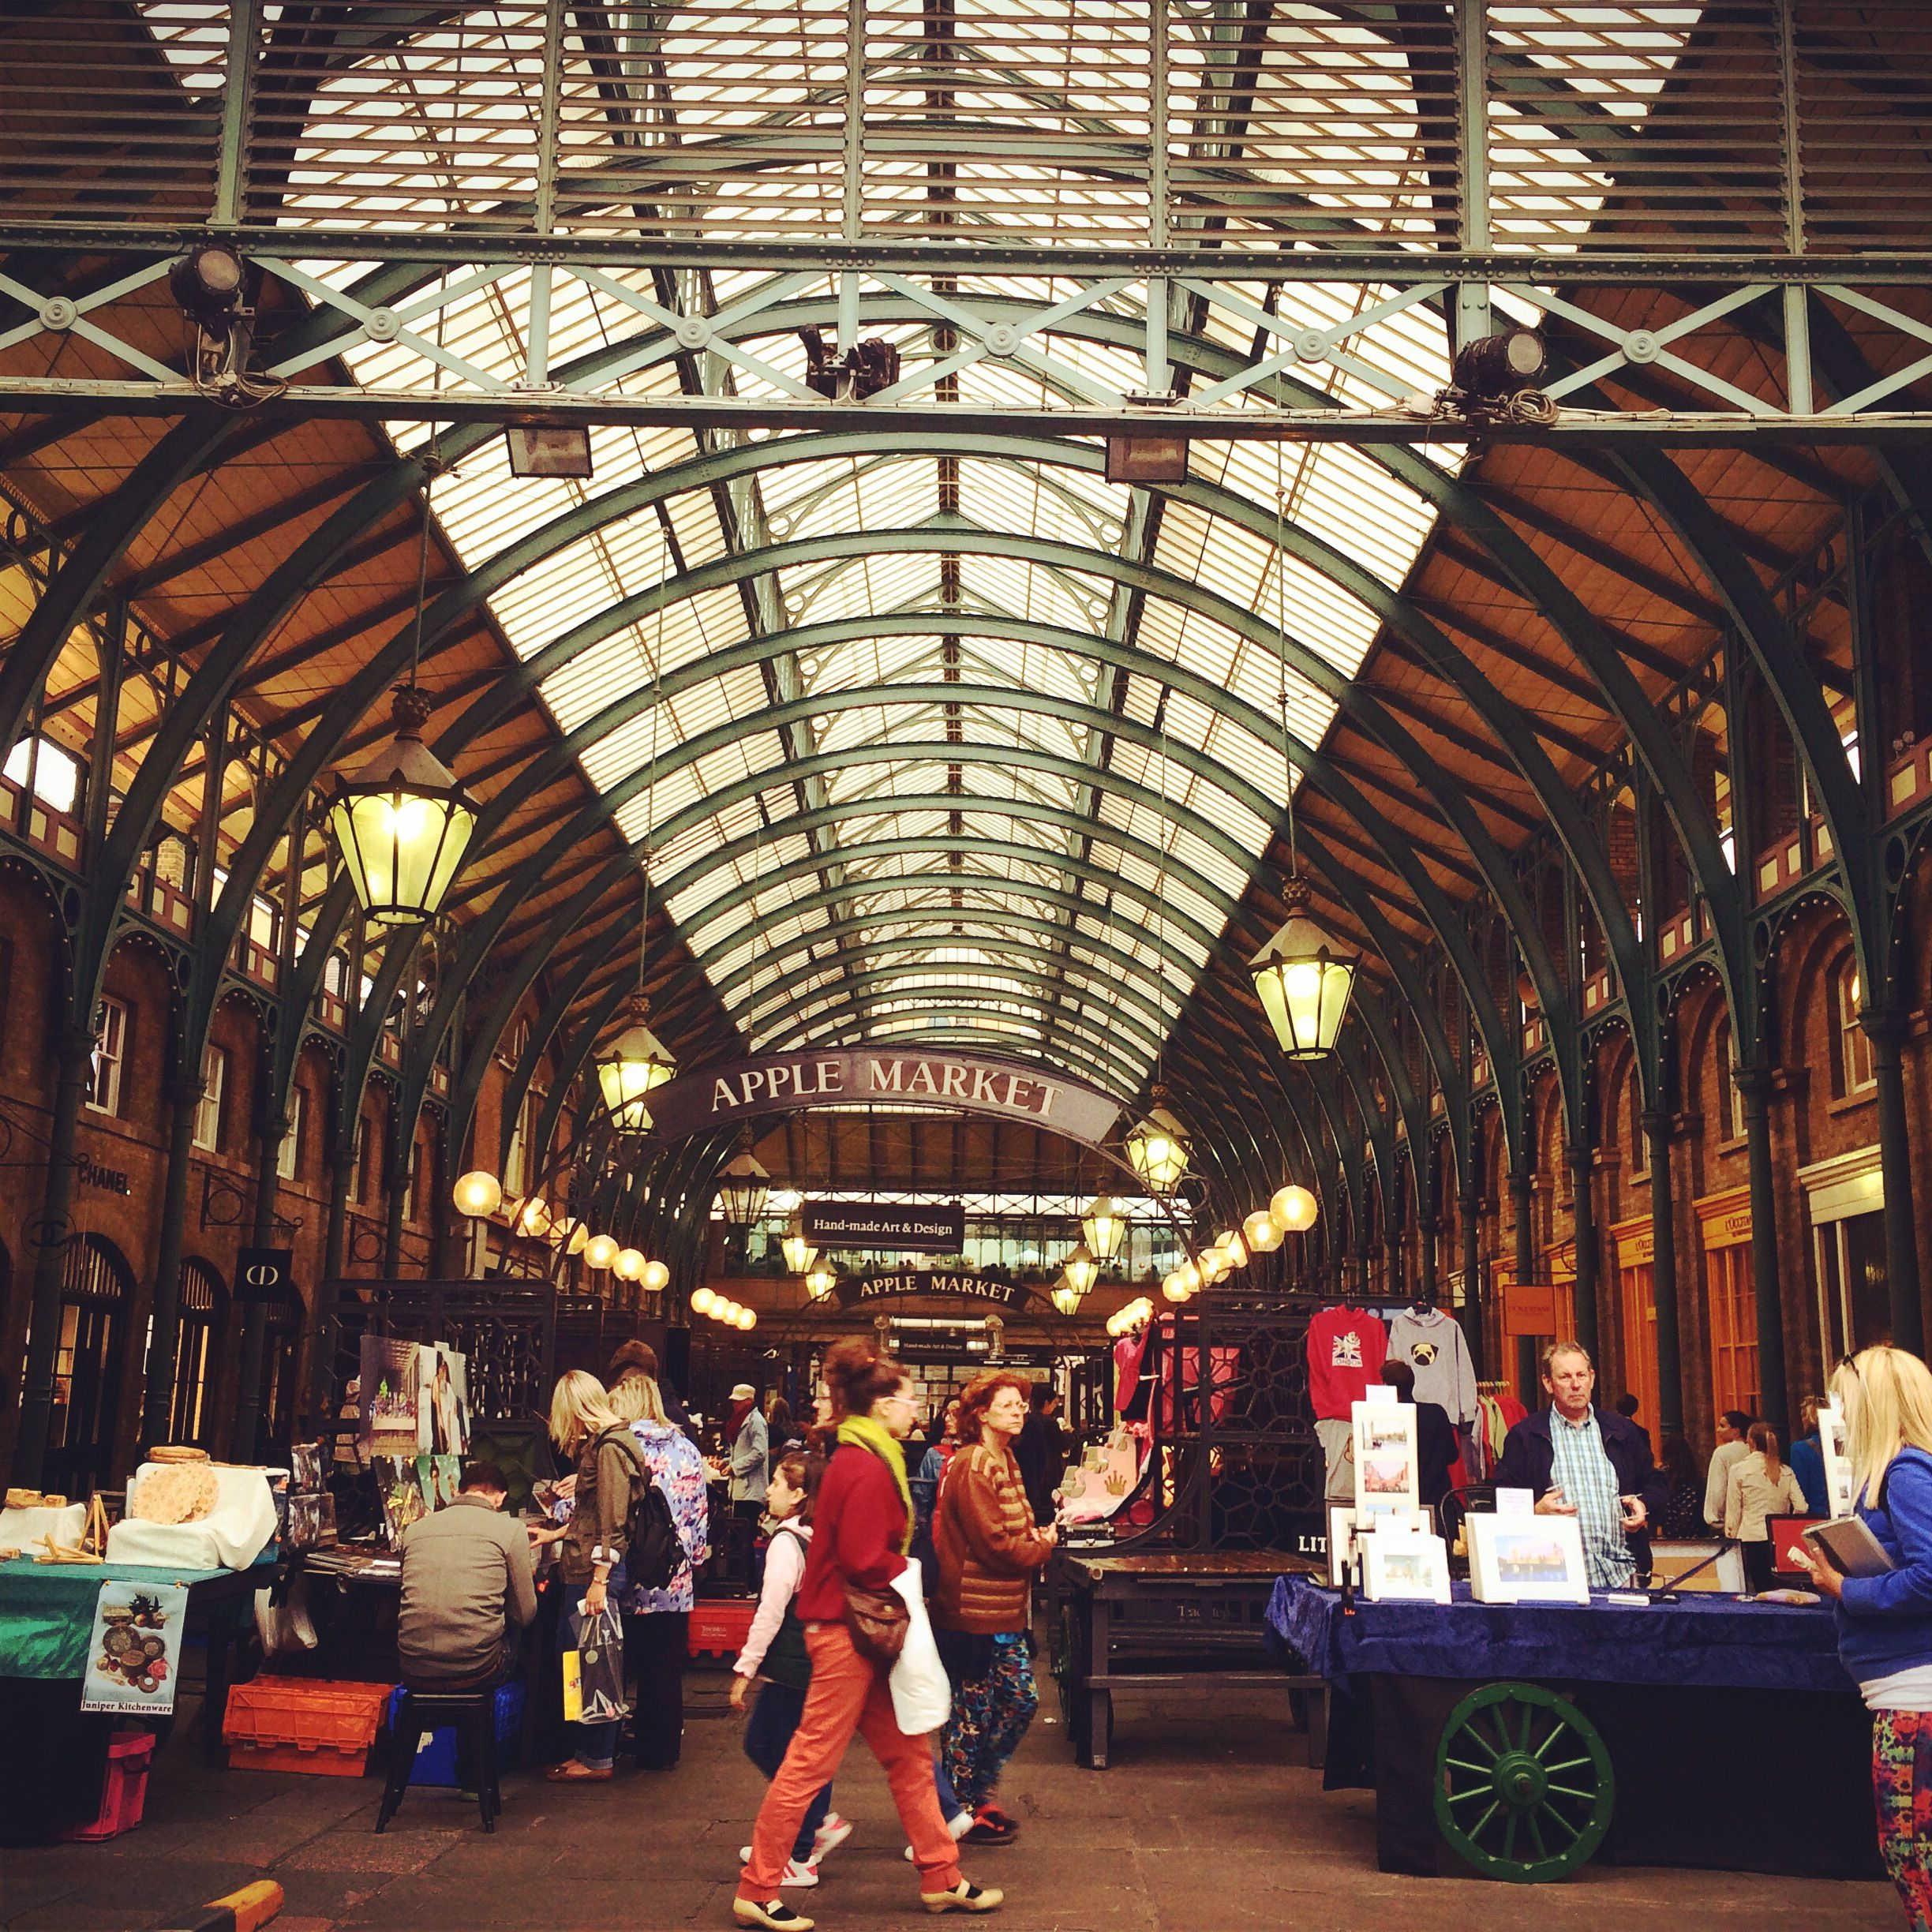 Covent Garden Market, London. Lonely Covent